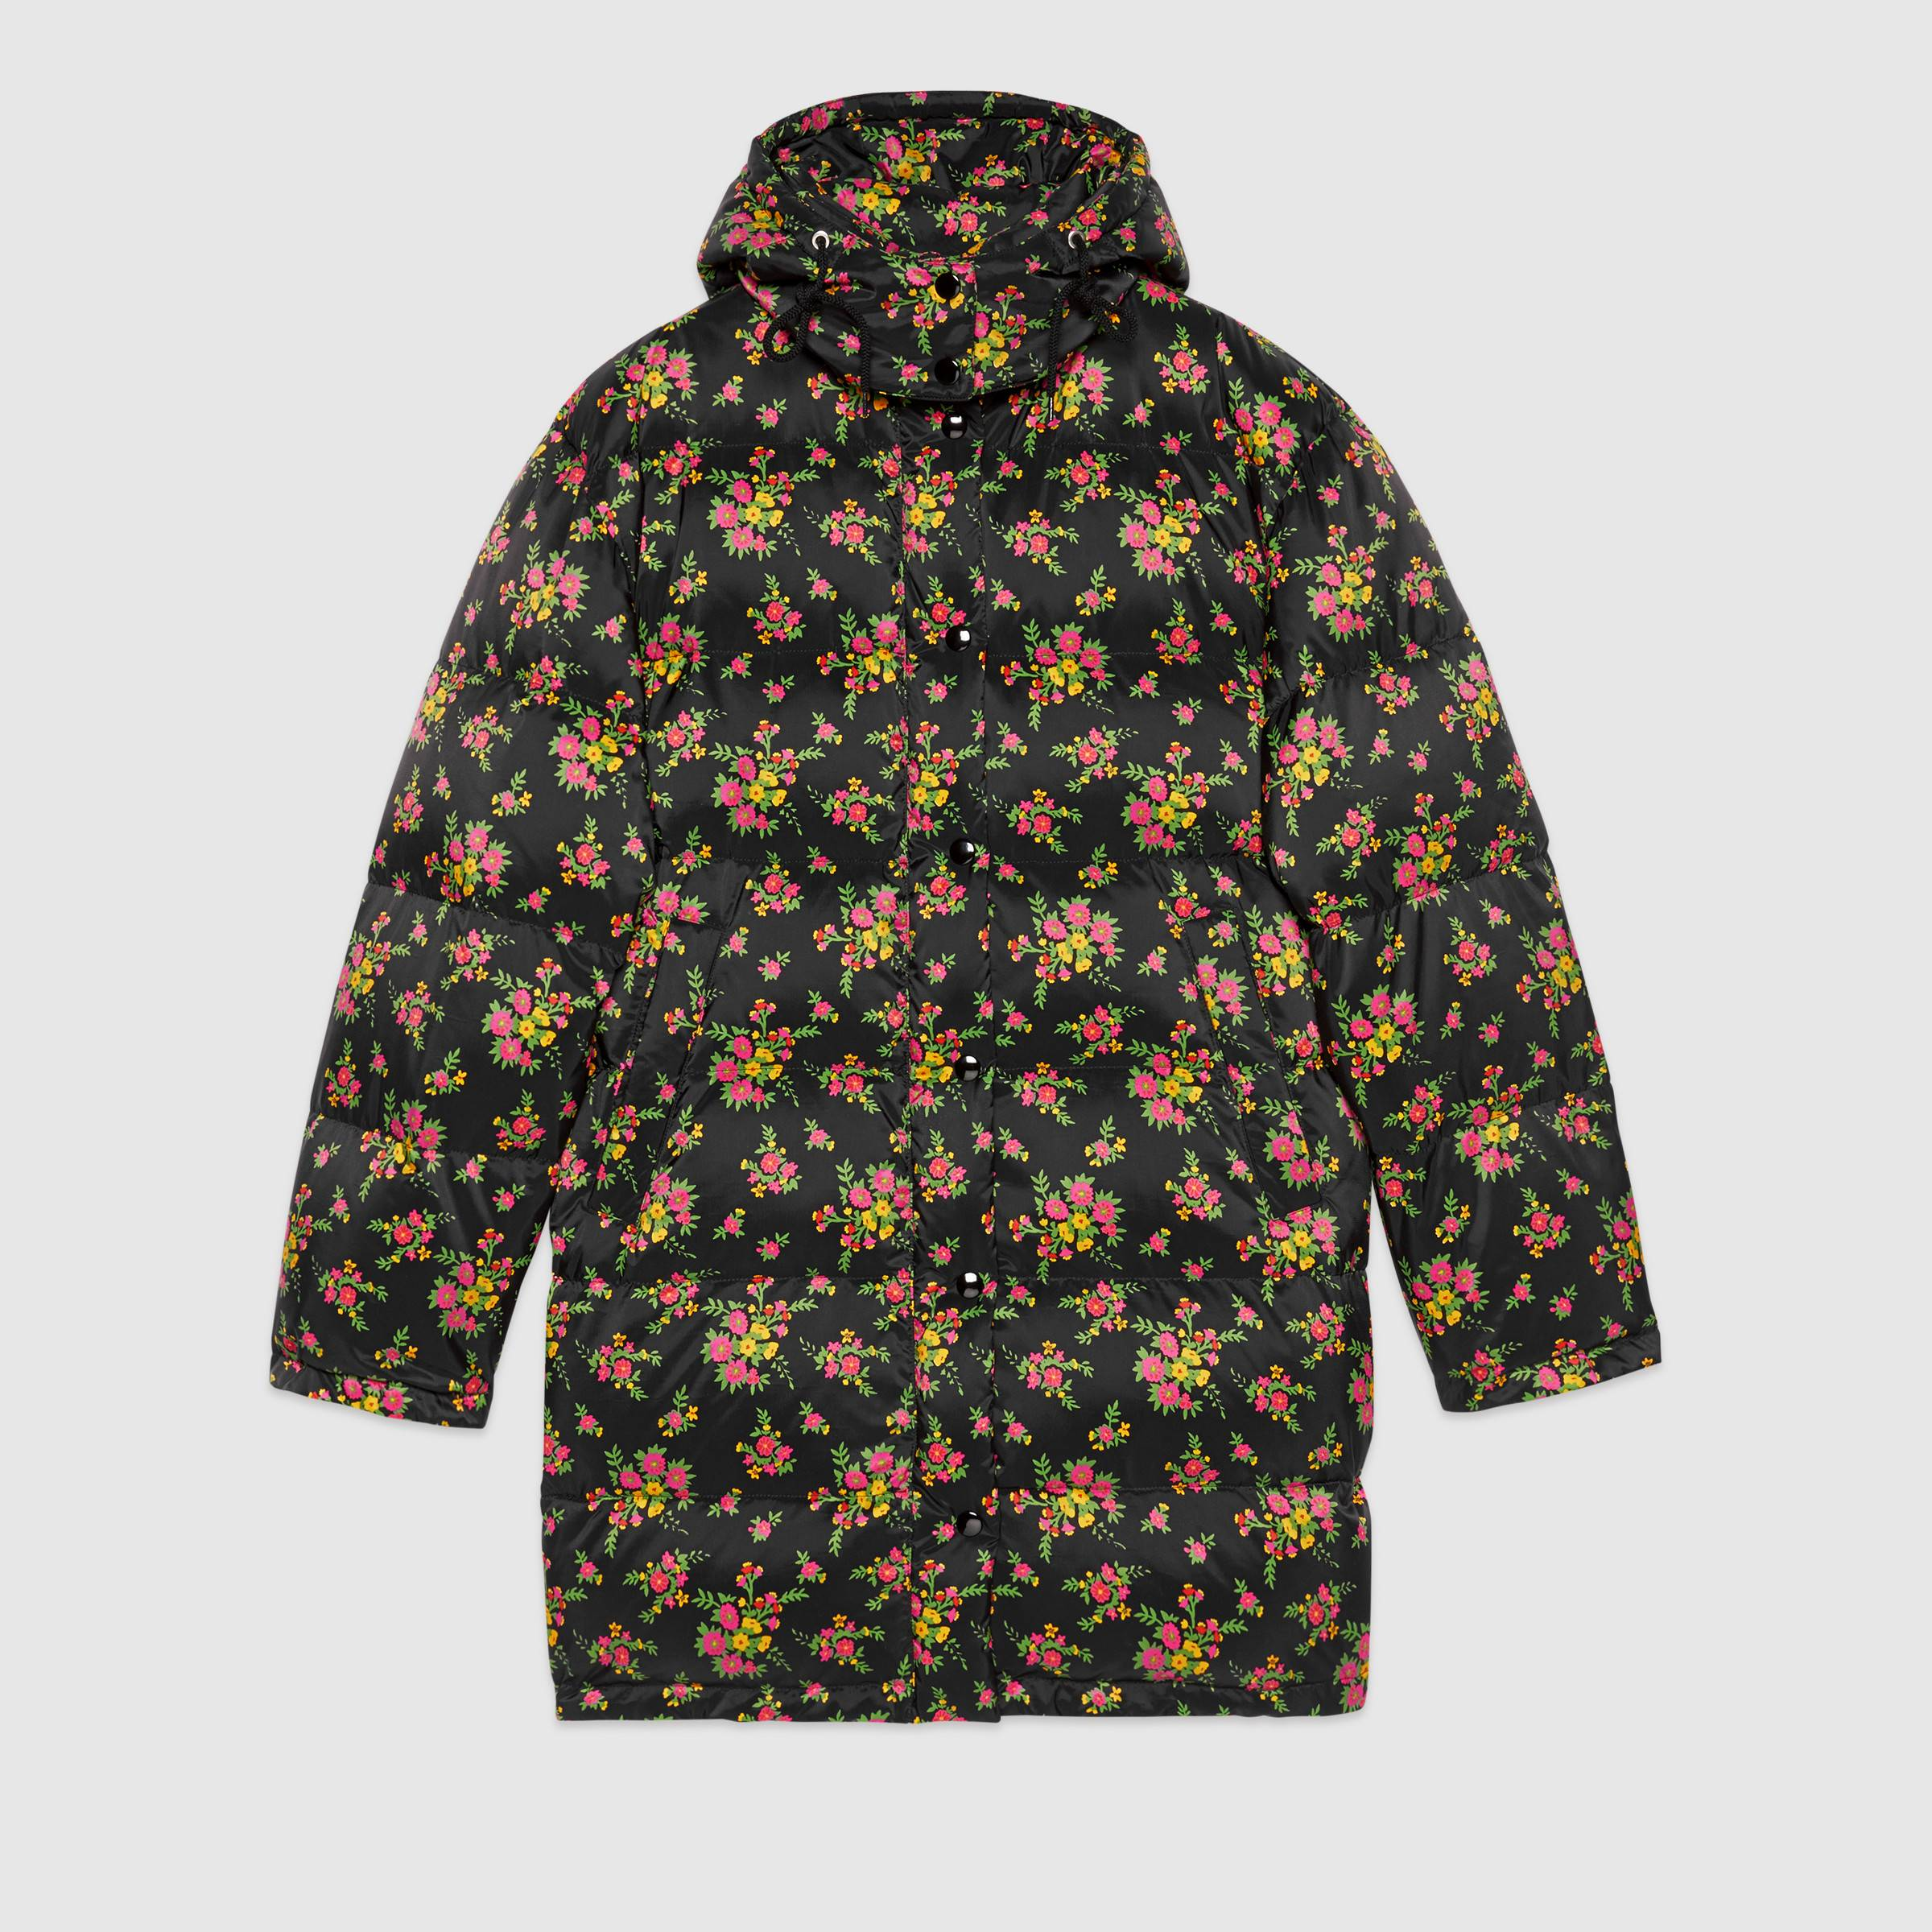 gucci-floral-print-oversized-down-filled-jacket